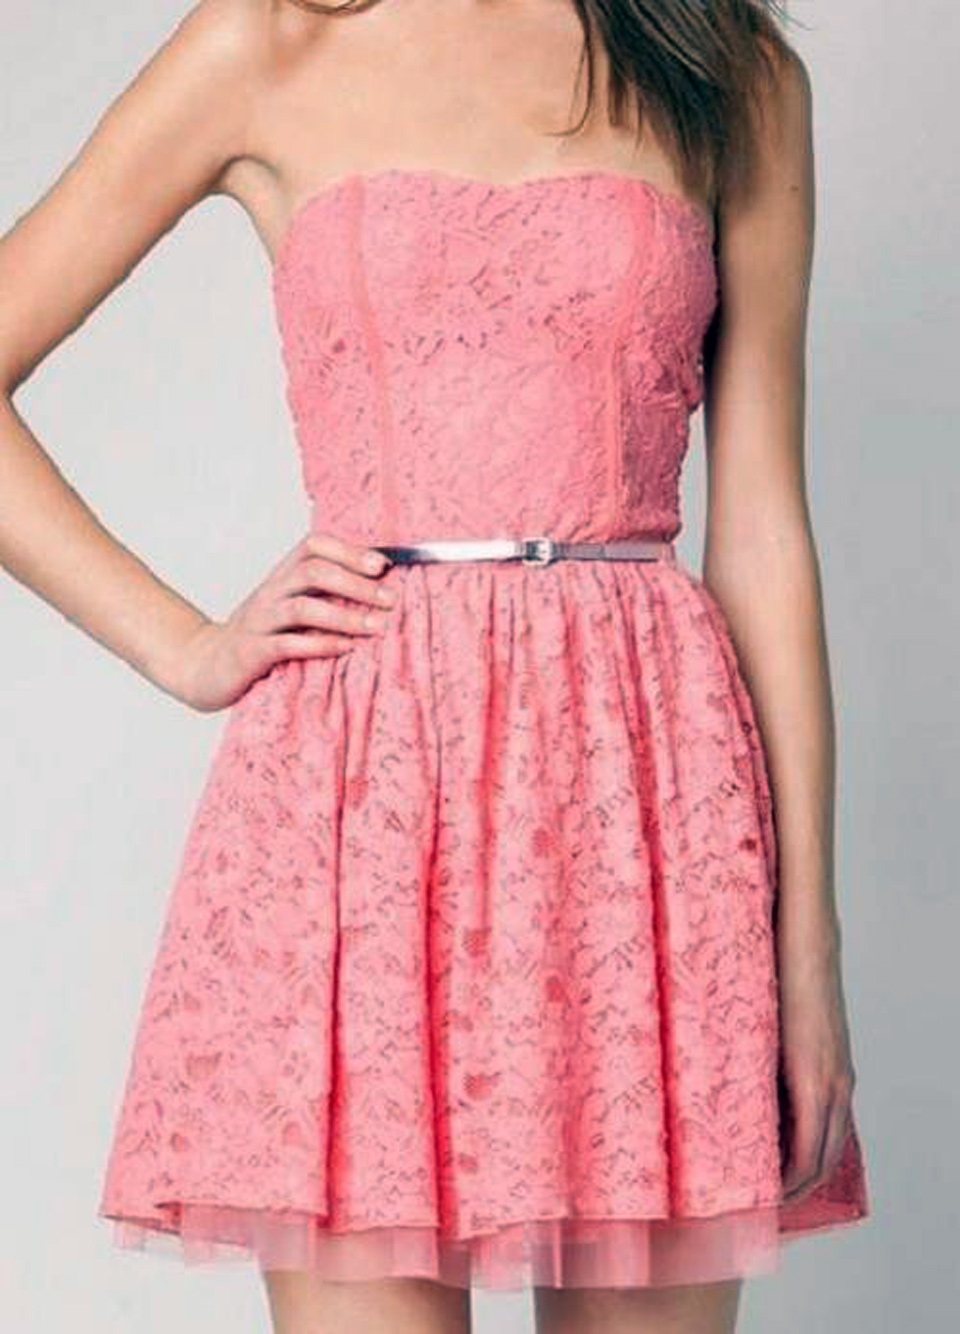 Cute Pink Dress Tumblr - Inofashionstyle.com